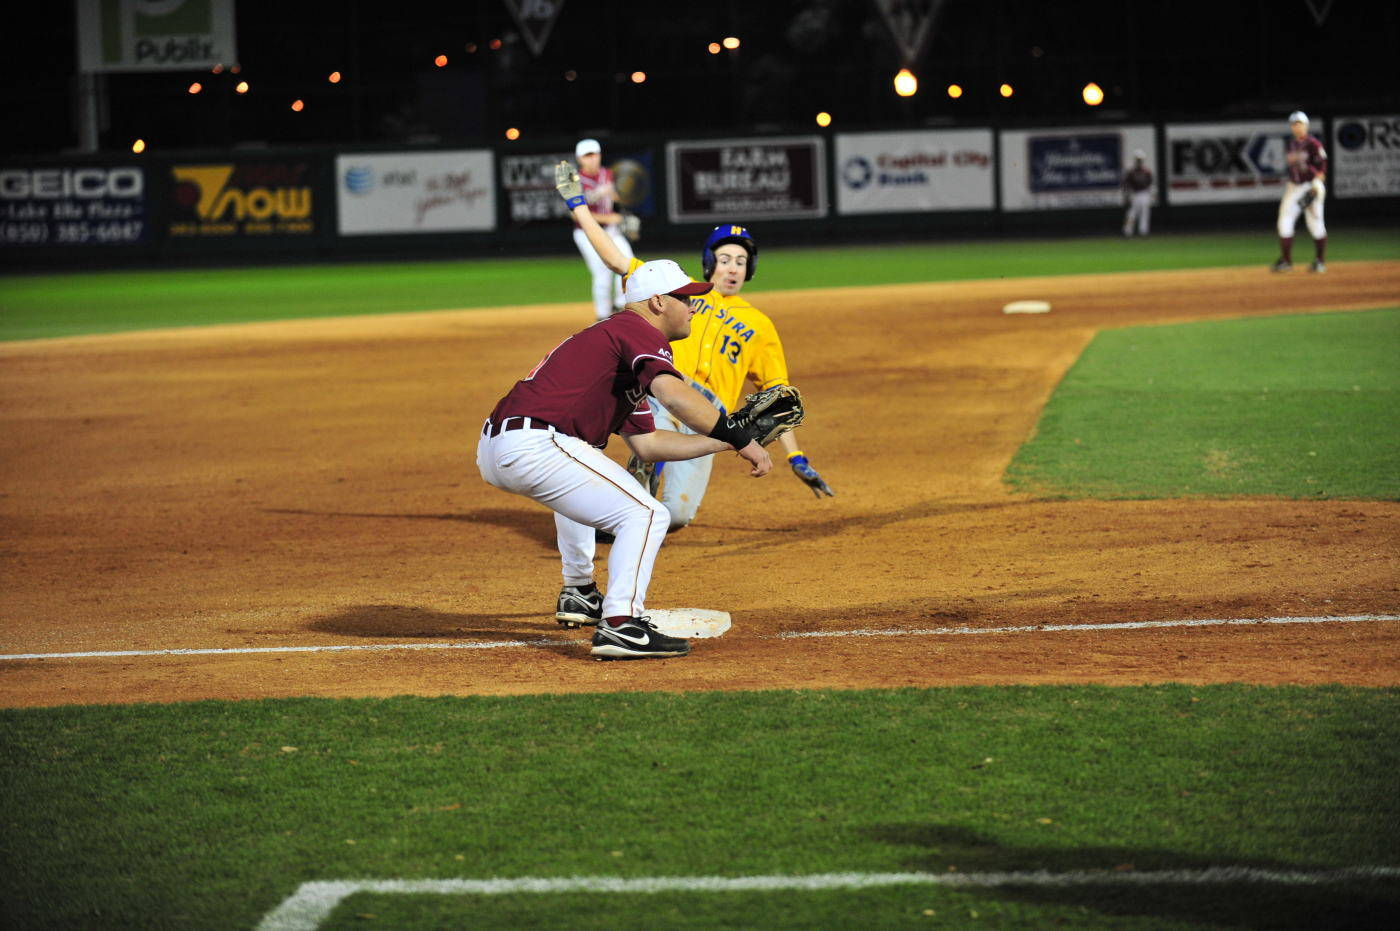 Stuart Tapley receives a throw from Rafael Lopez and tags out Hofstra's Mark Stuckless trying to steal third in the top of the ninth.